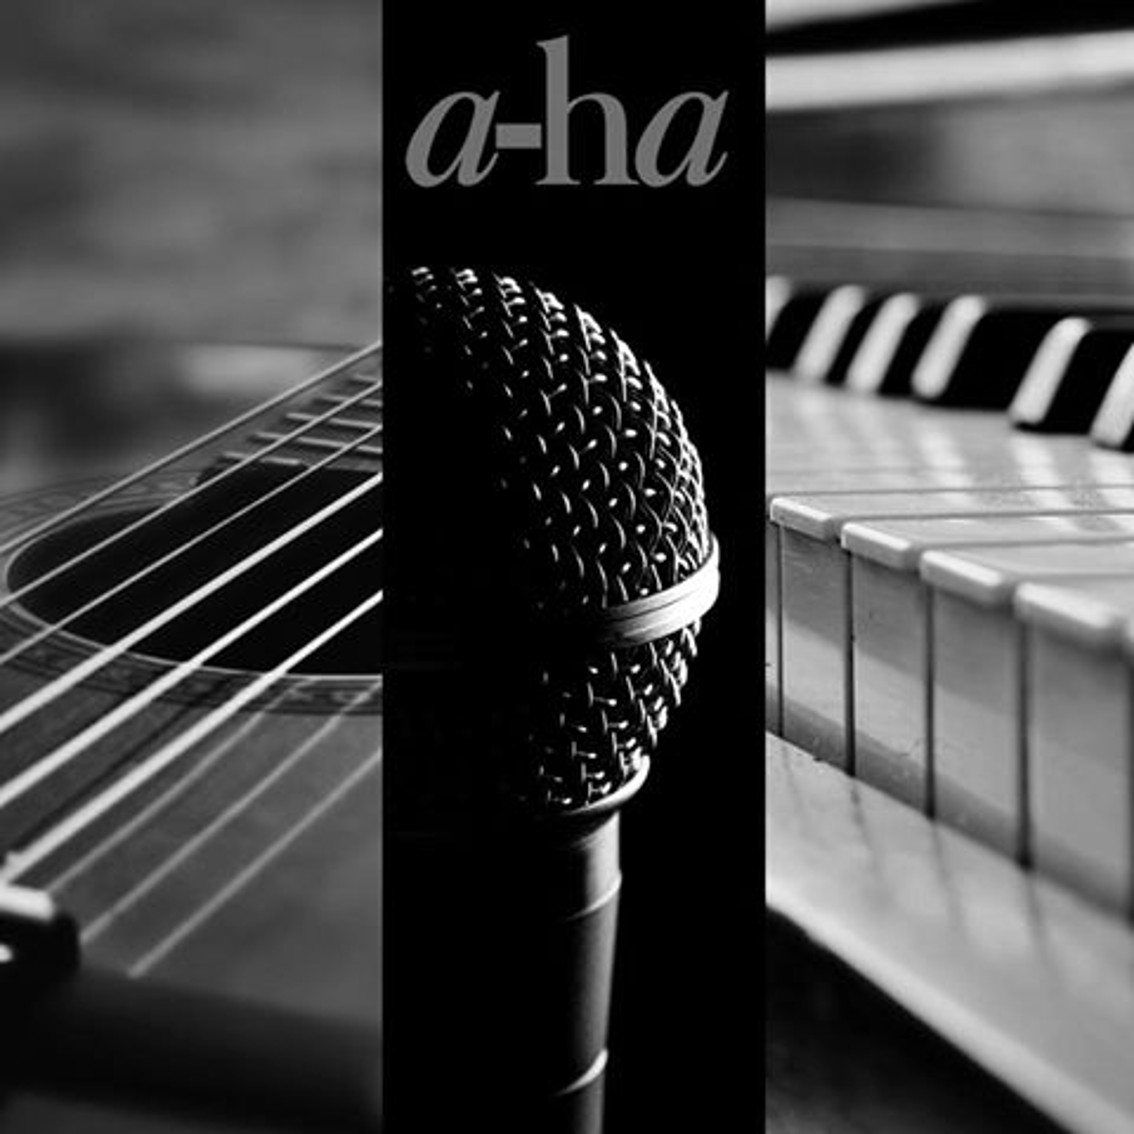 a-ha to hit the road with acoustic set? All seems to indicate so